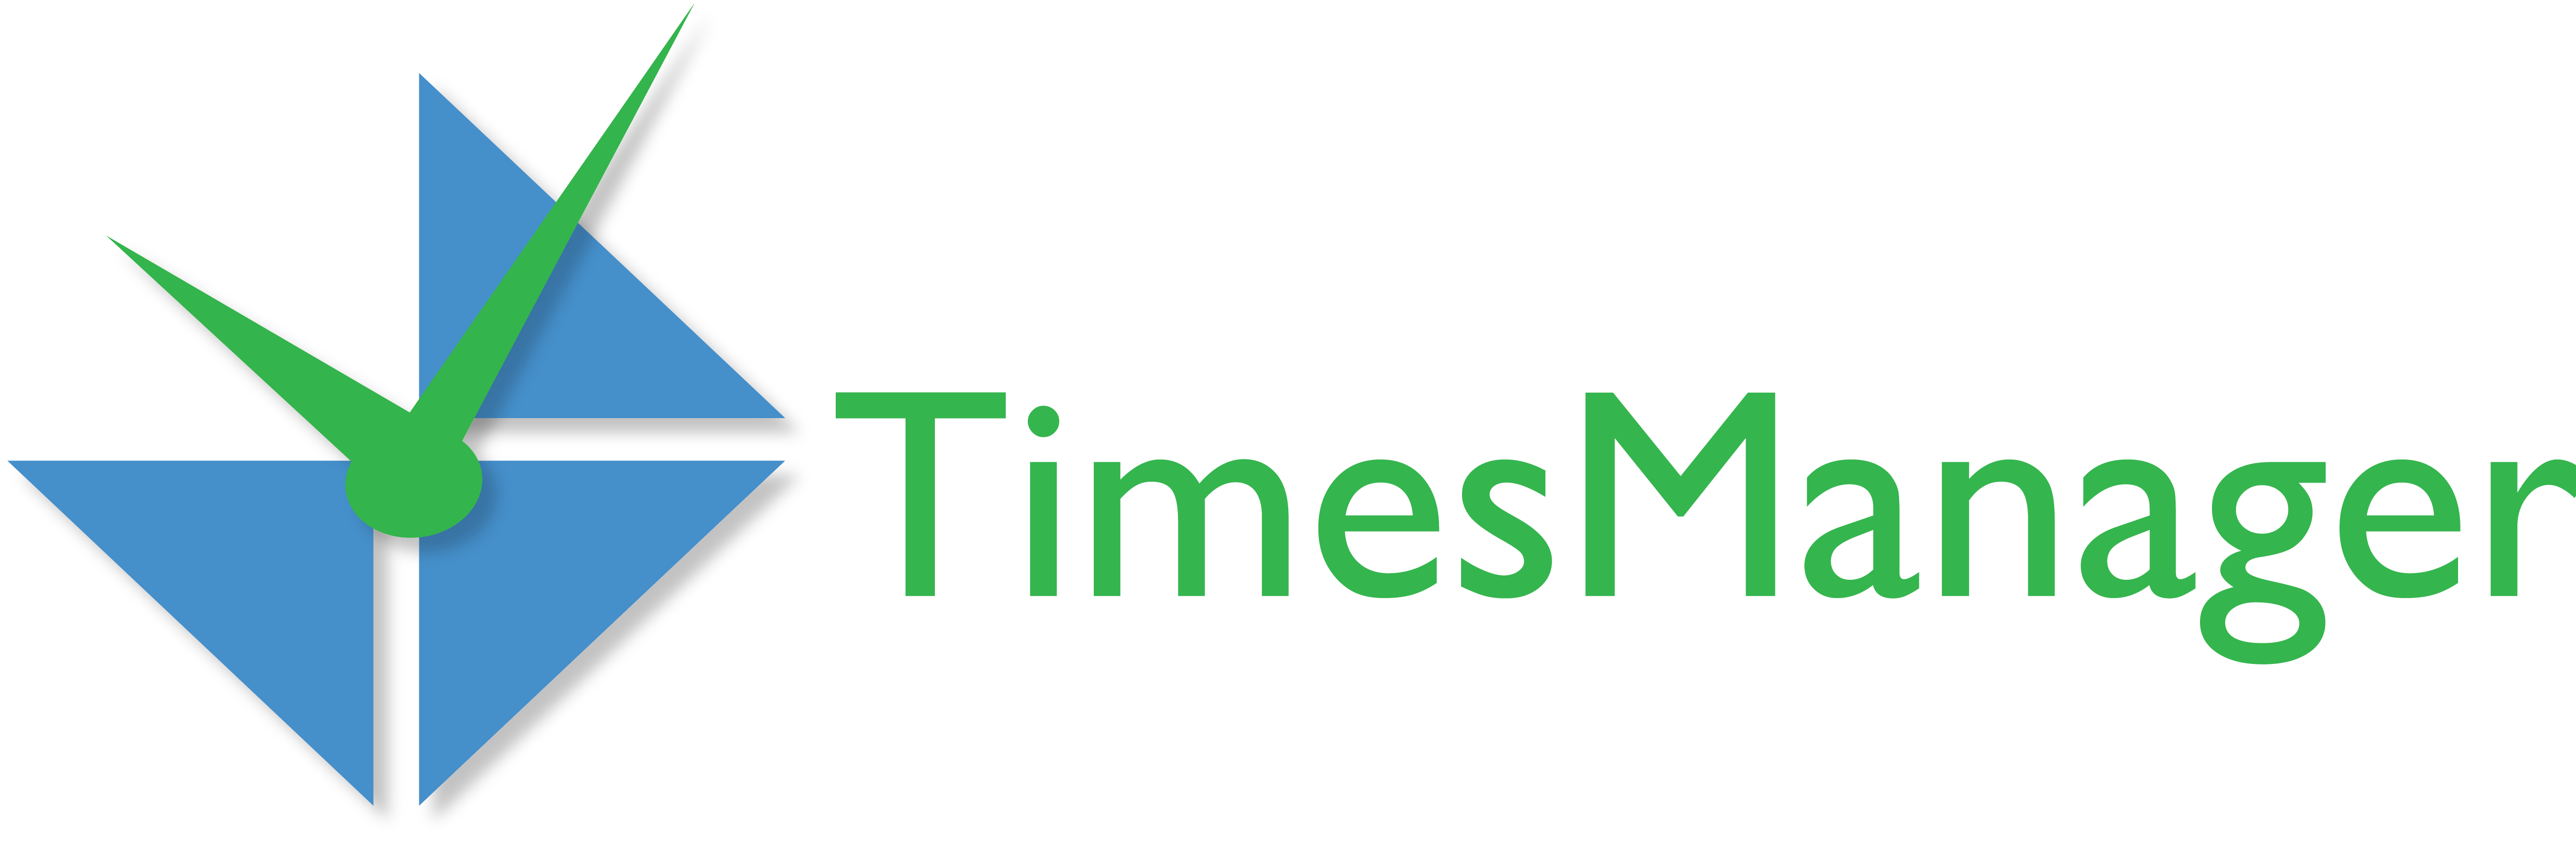 Times Manager